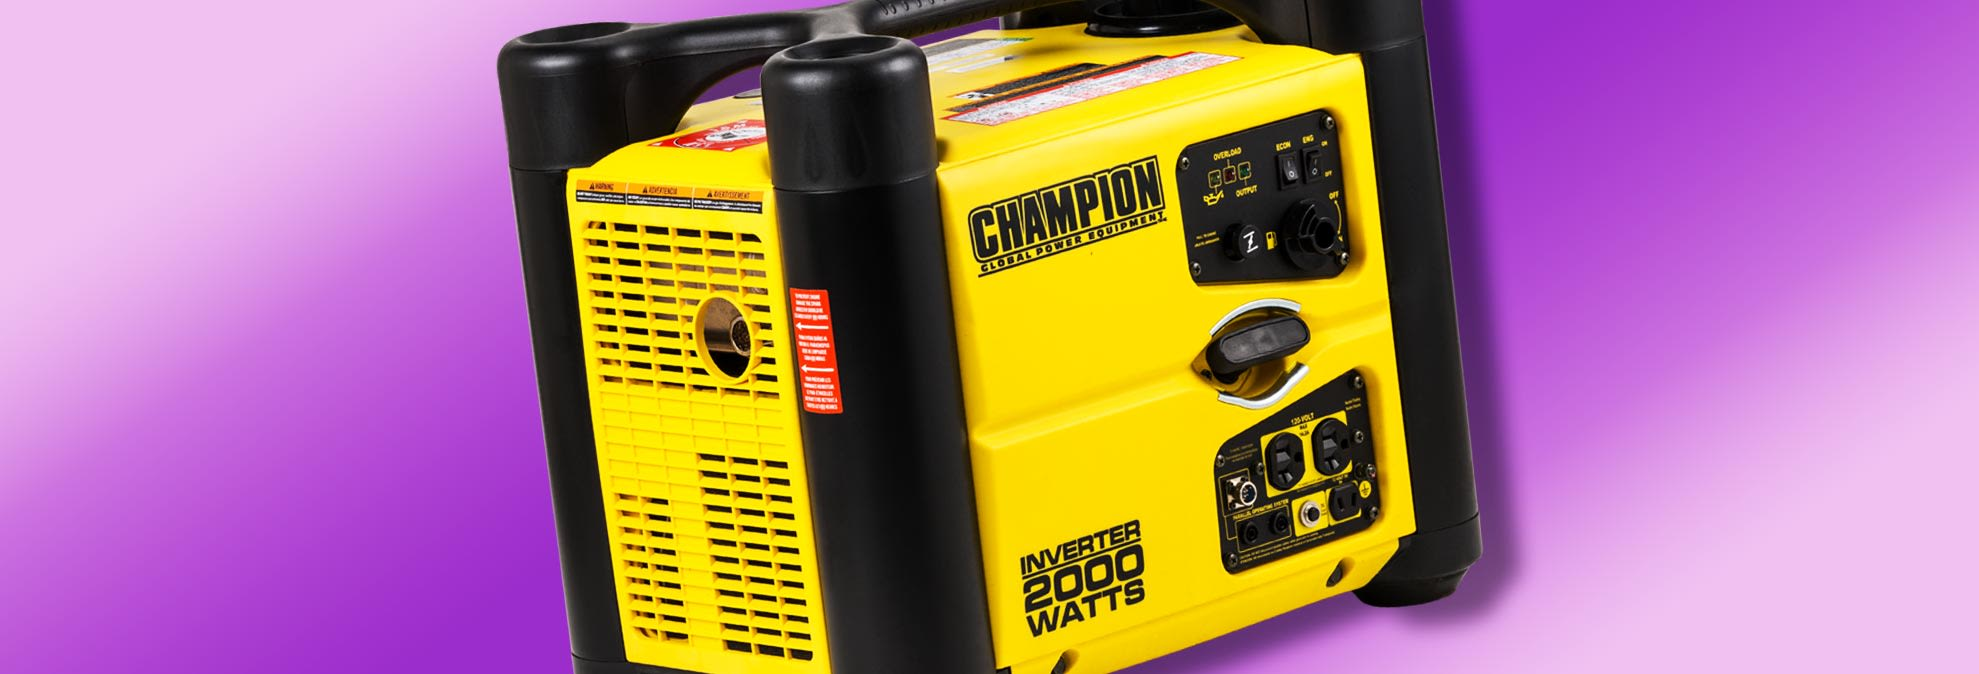 3 Recreational Inverter Generators With Cool Features